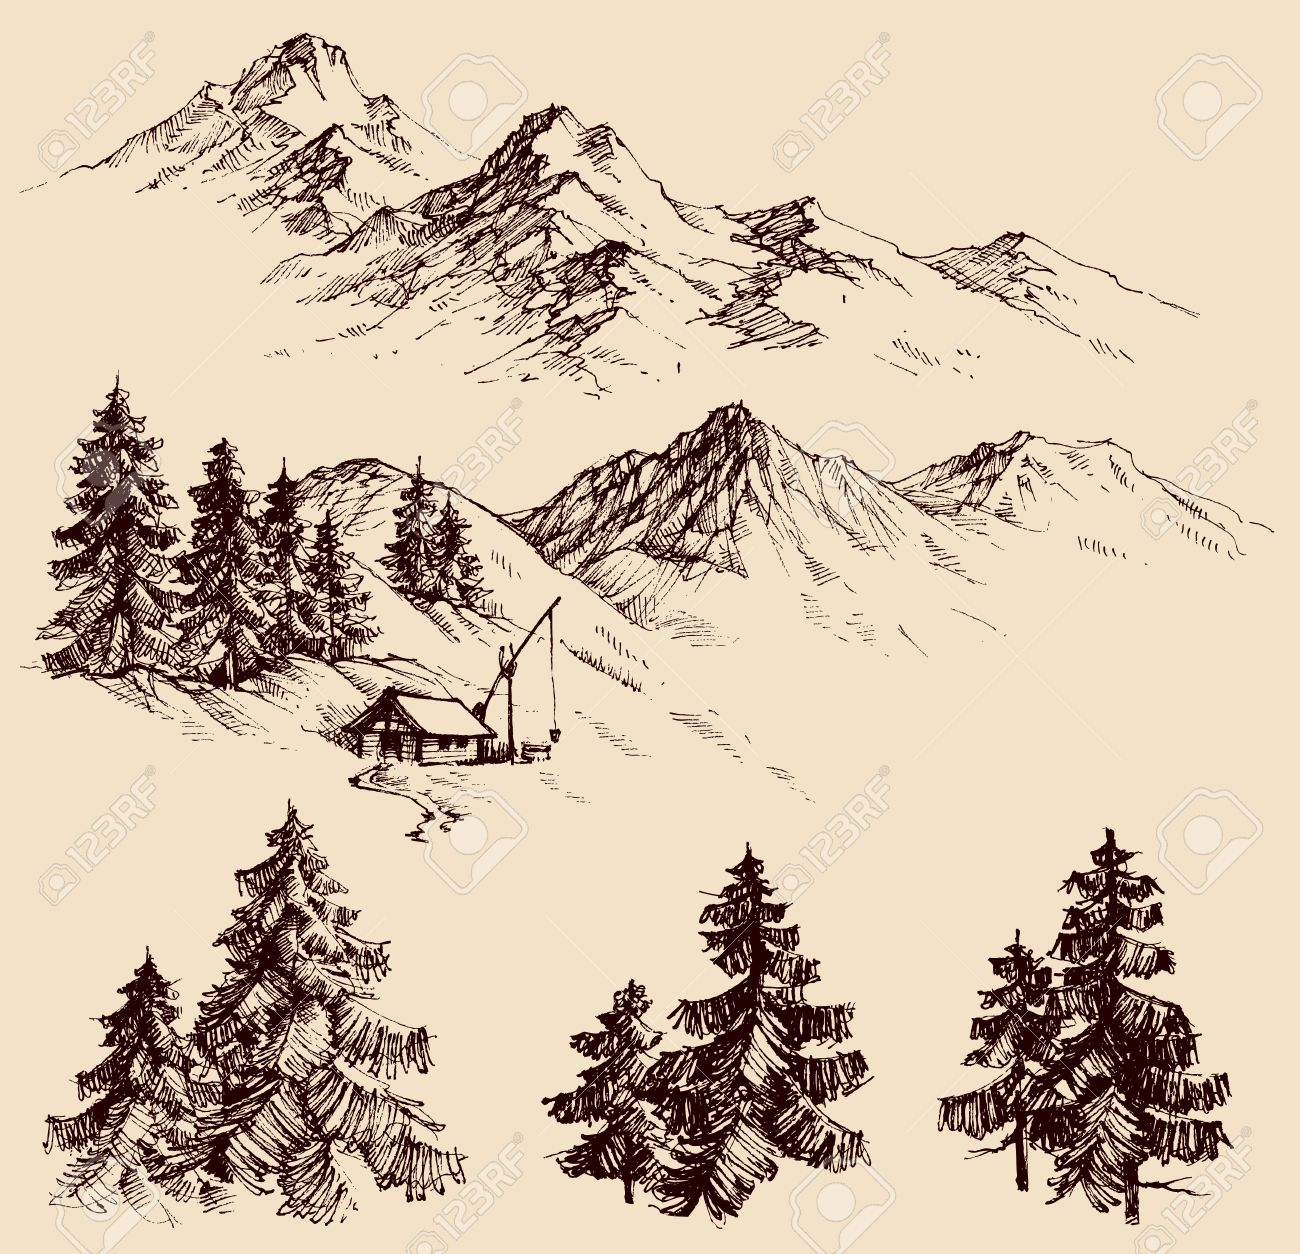 Nature Design Elements Mountains And Pine Trees Sketch Stock Vector